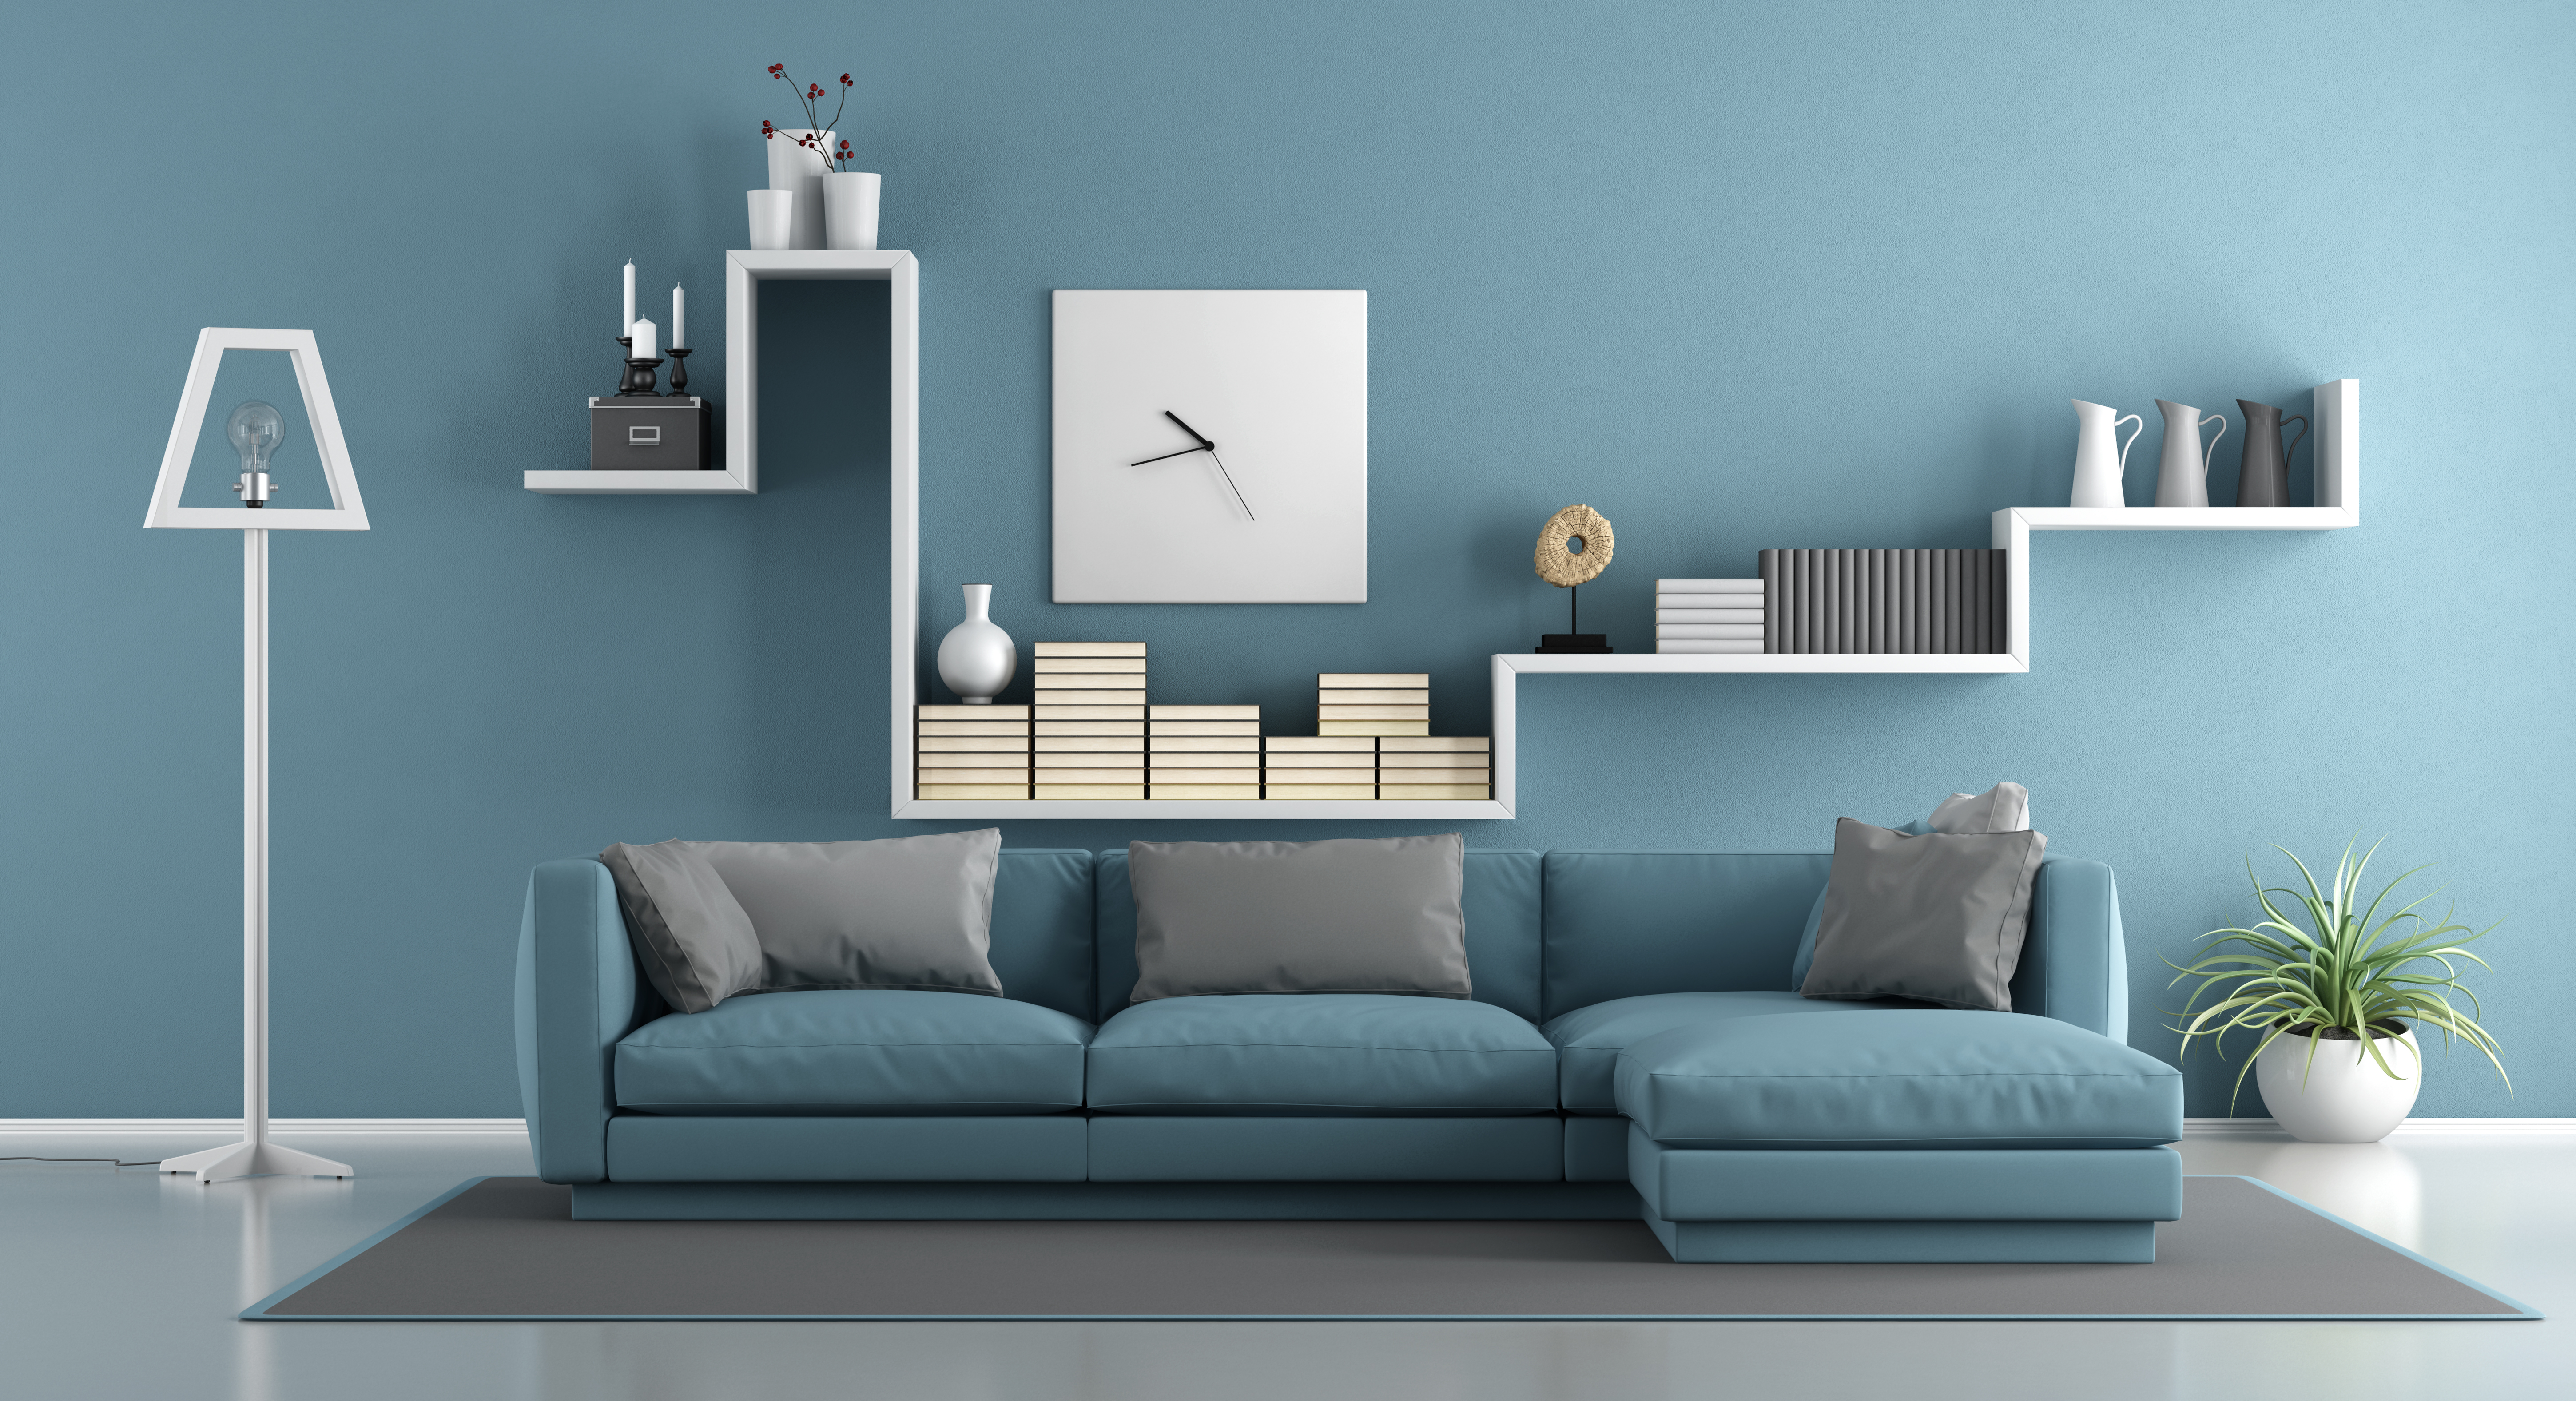 Home Decor Ideas  Designs to Inspire You  Asian Paints